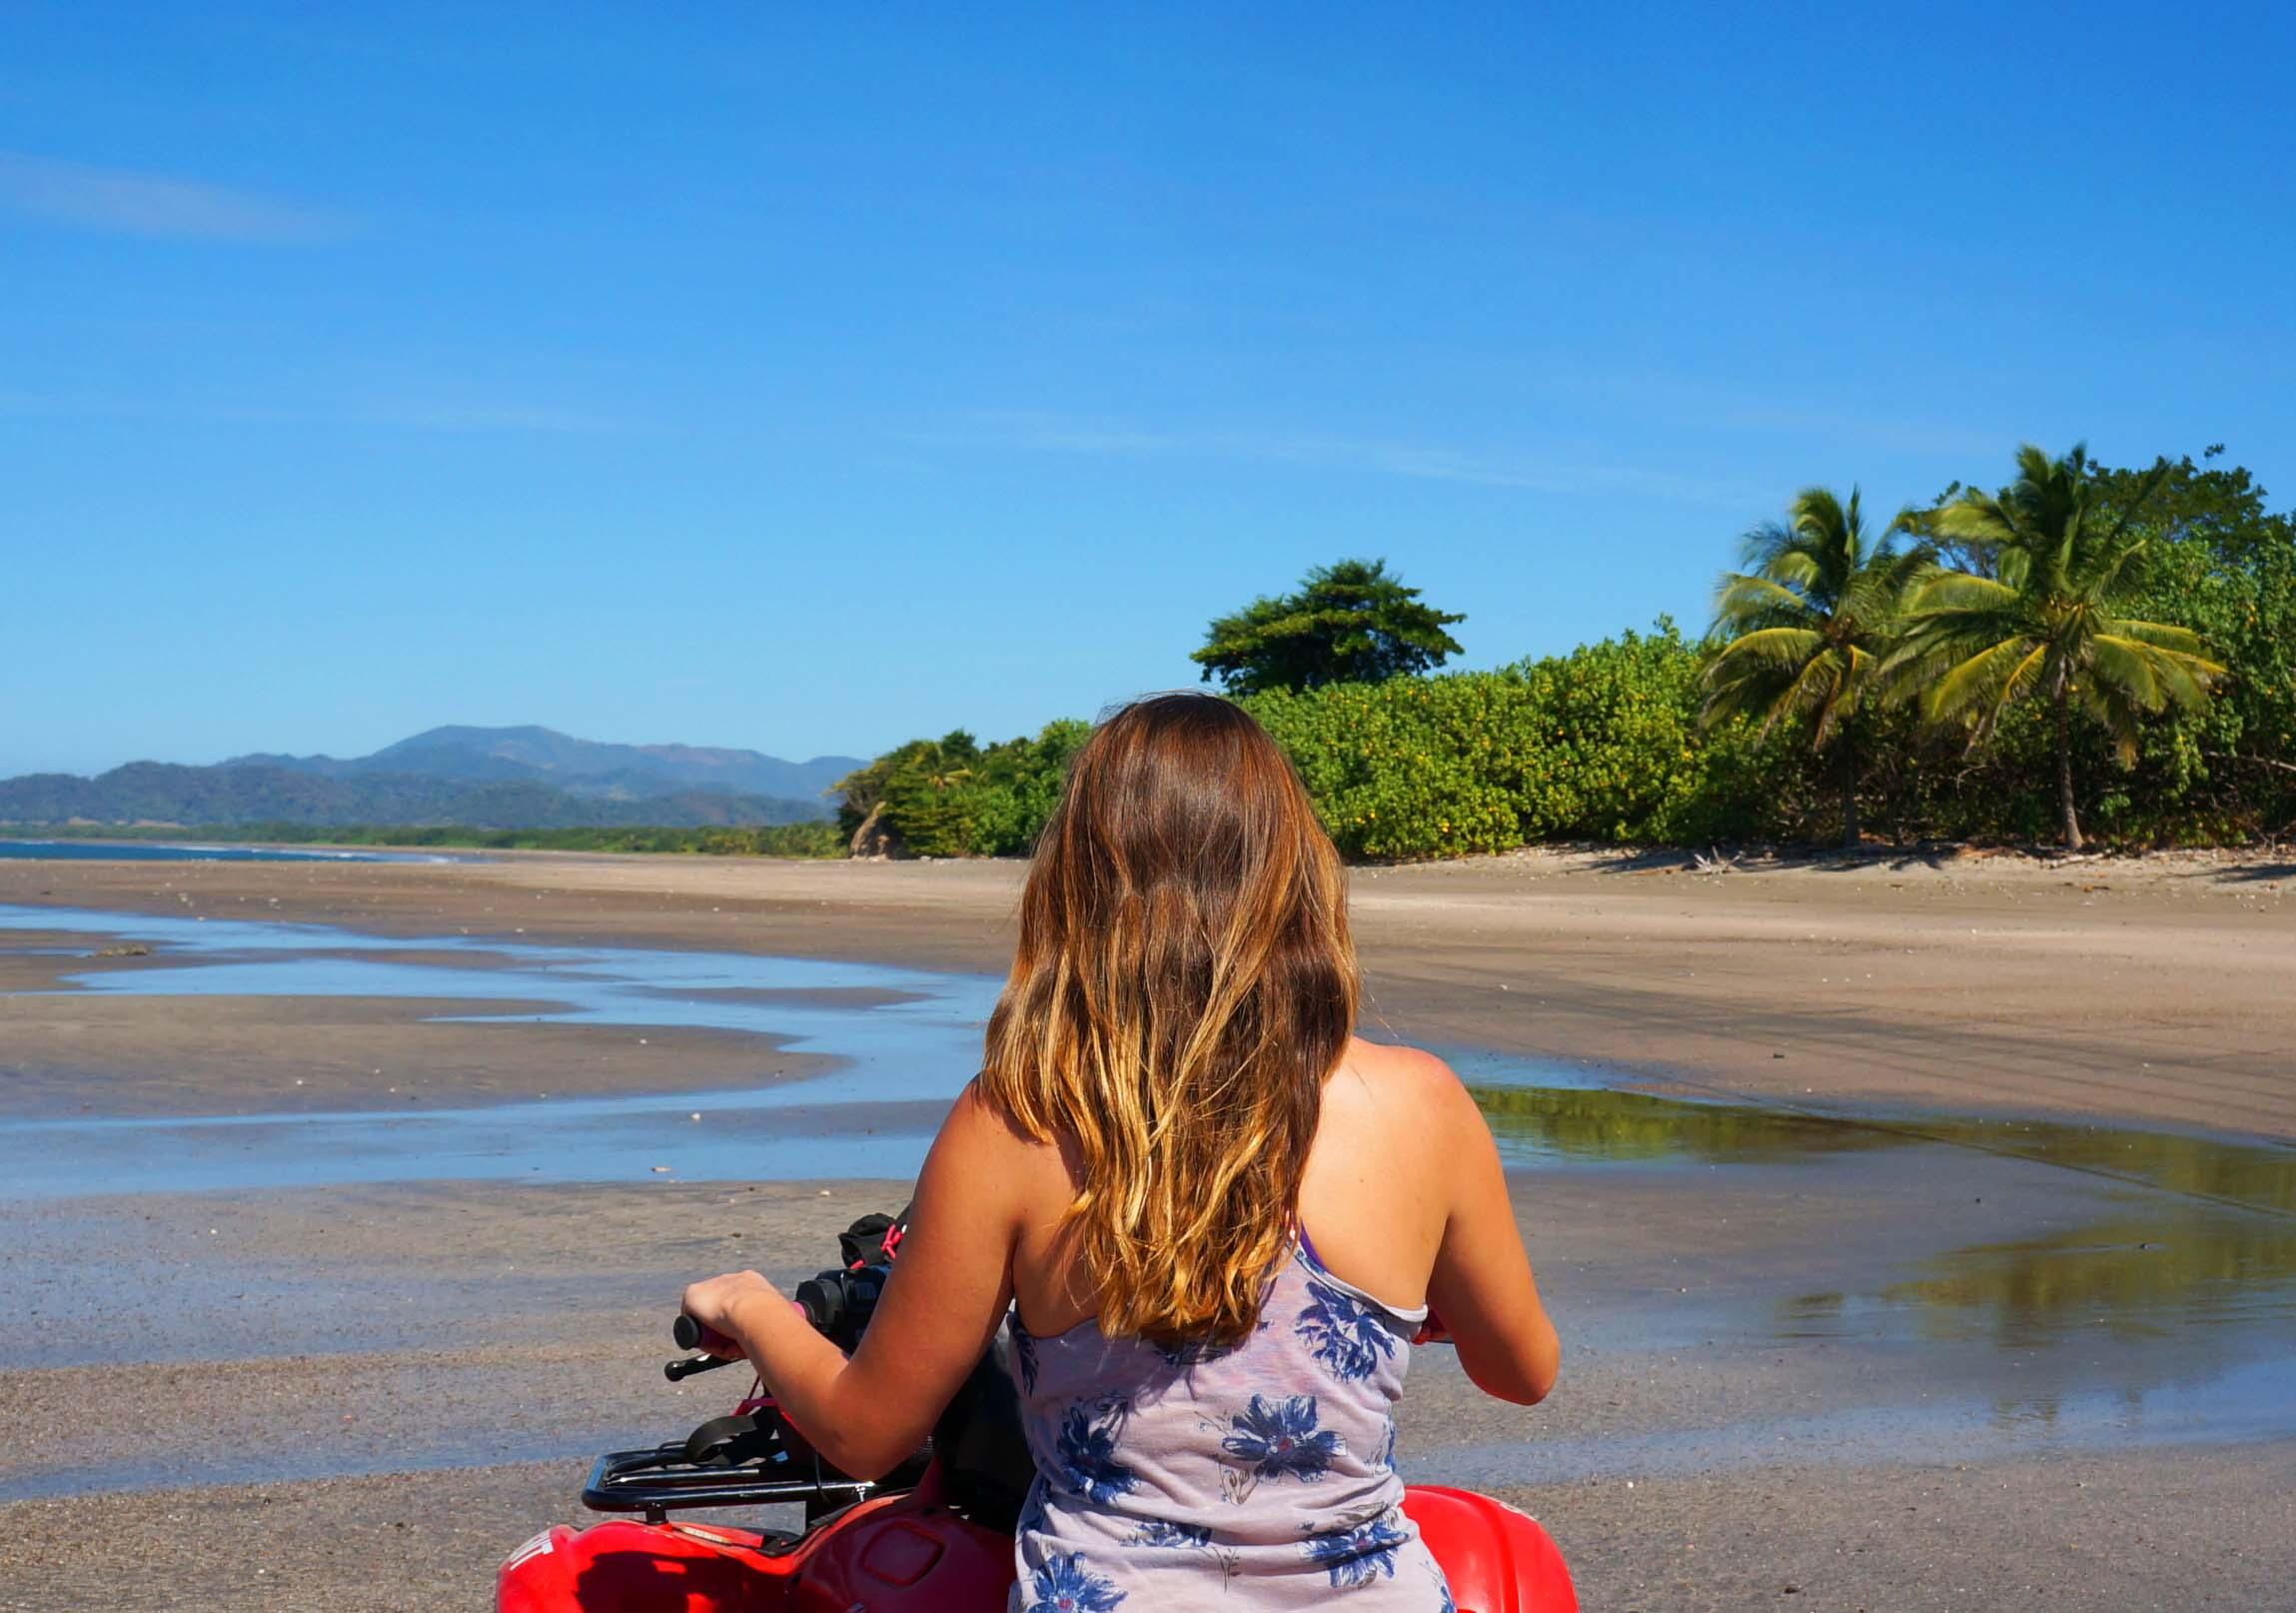 Beach Exploring With an ATV Rental in Santa Teresa, Costa Rica